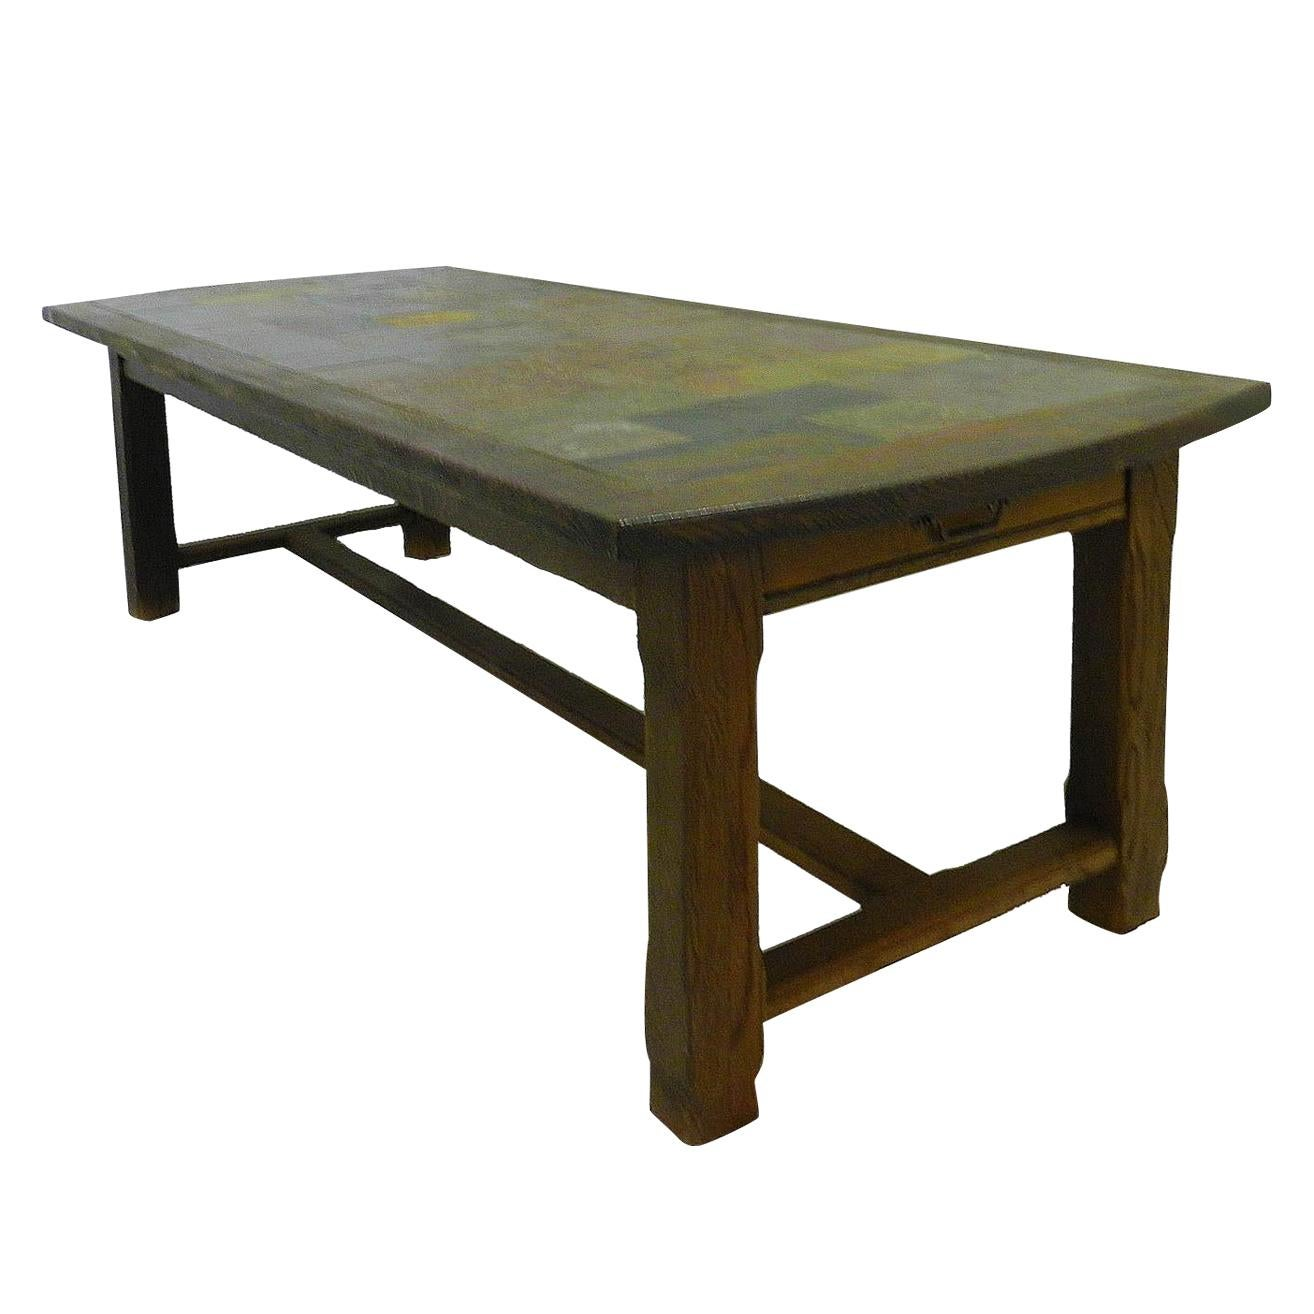 French Farmhouse Table Refectory Shaker Style Stone Tiled Top Early 20th Century